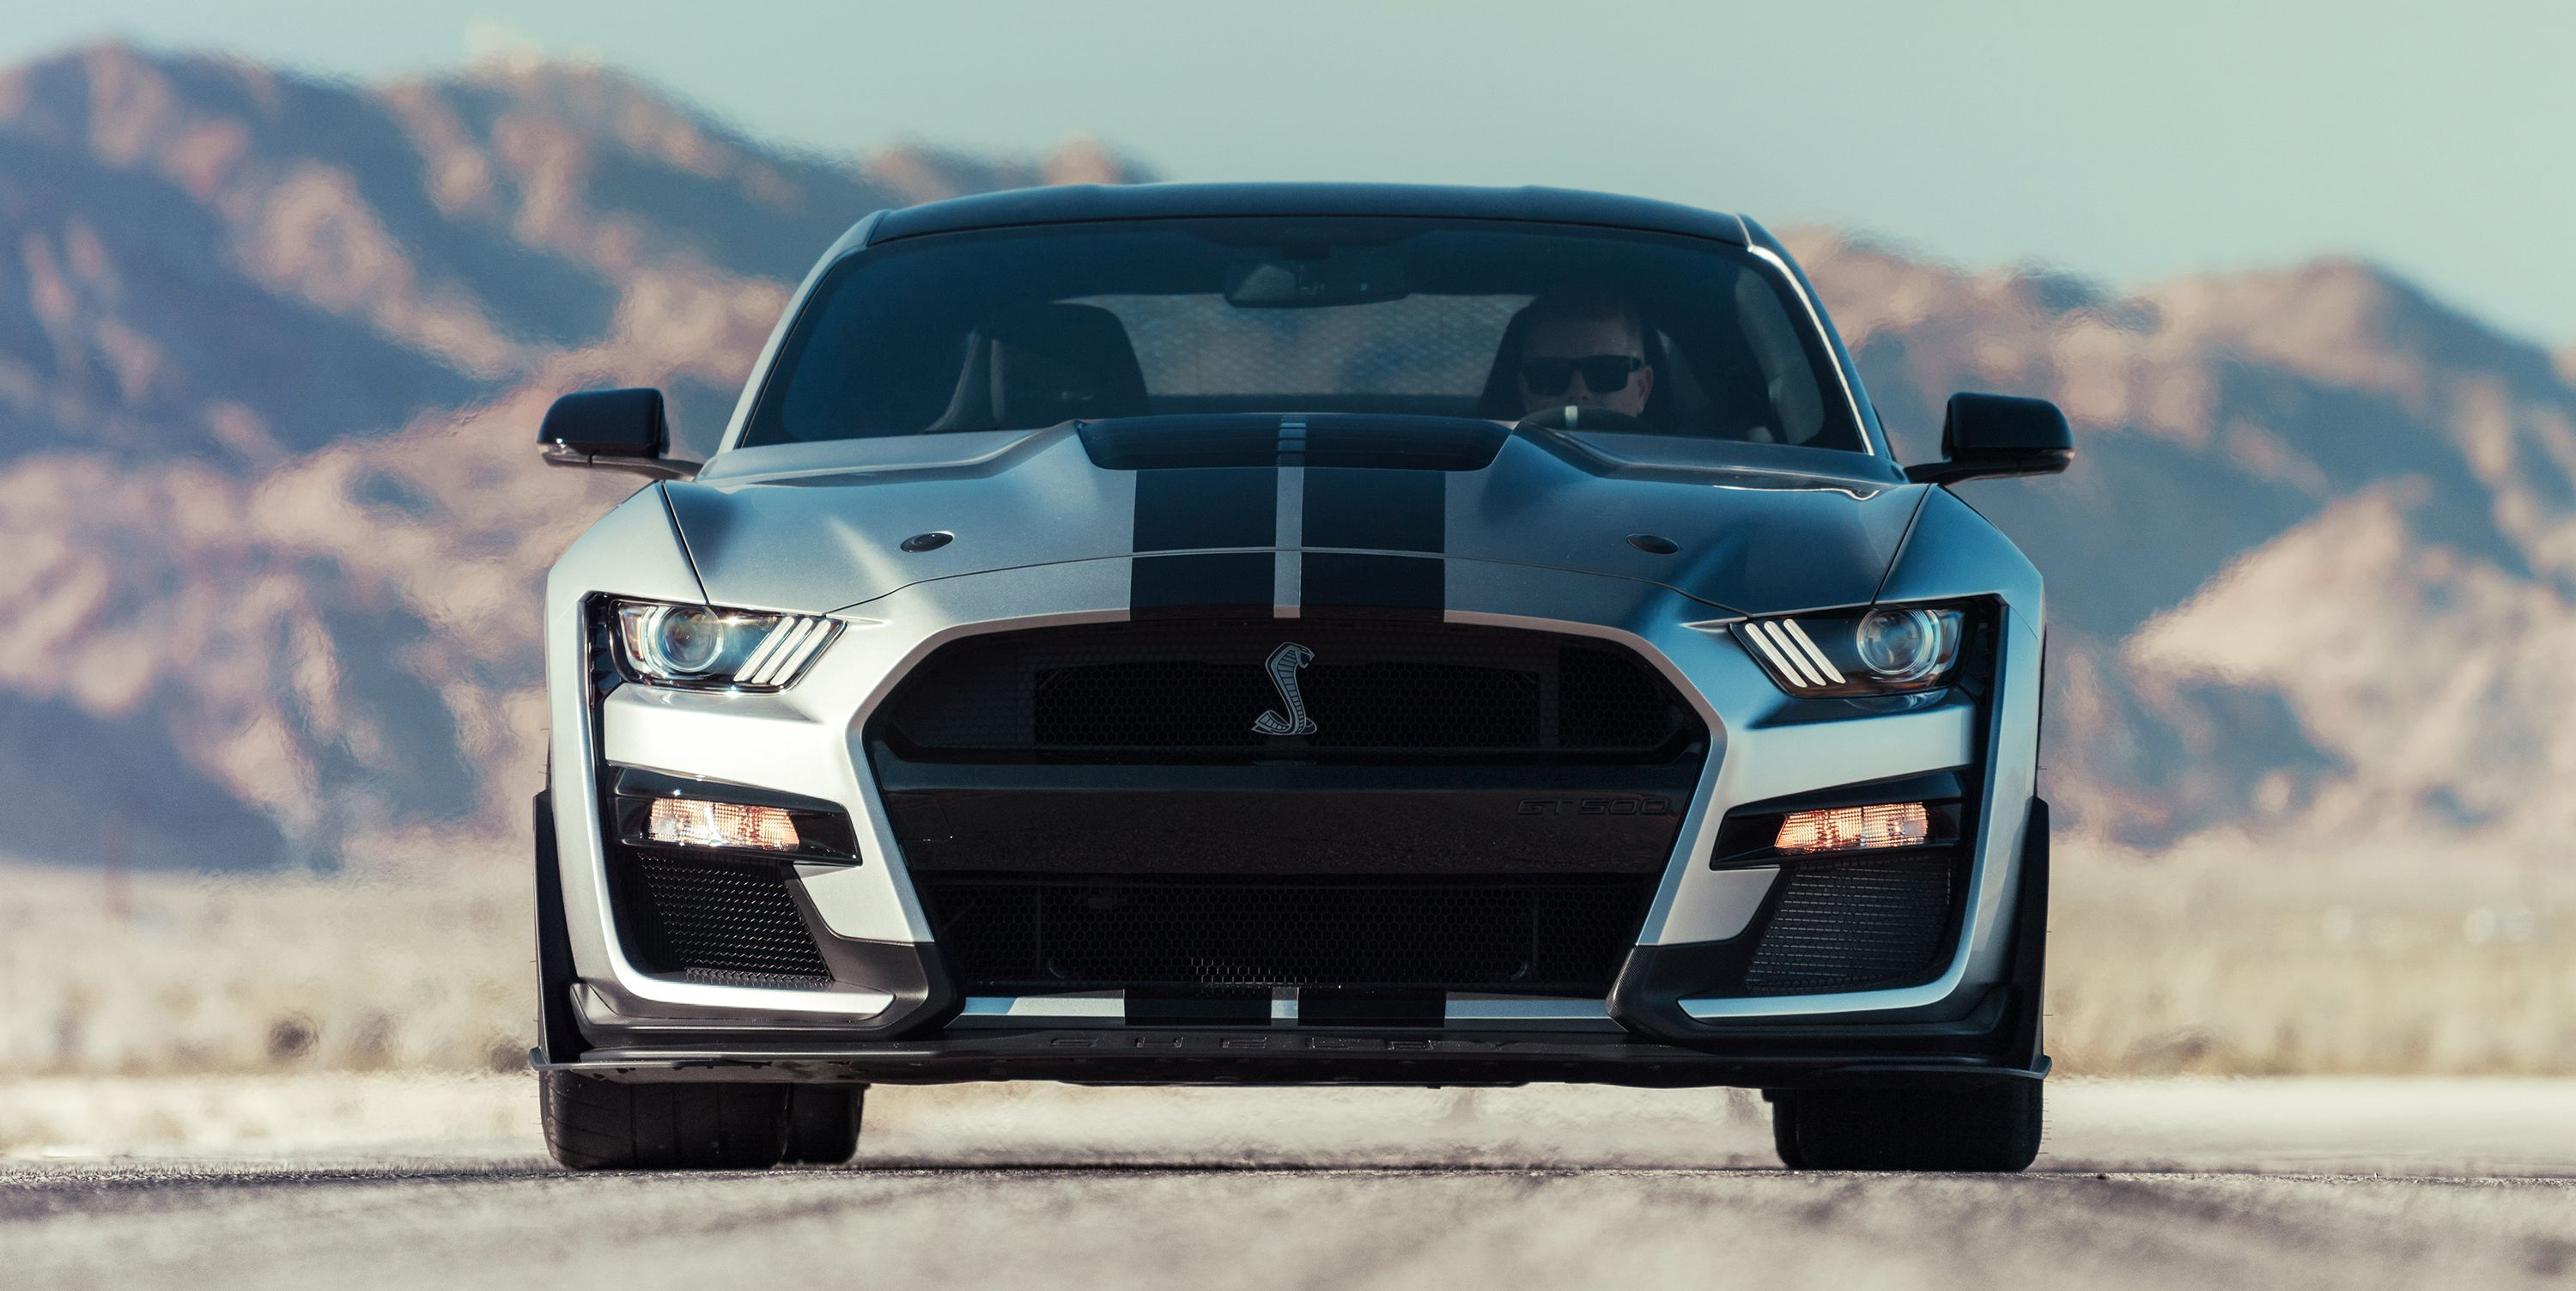 The 2020 Ford Mustang Shelby Gt500 Will Be Limited To 180 Mph